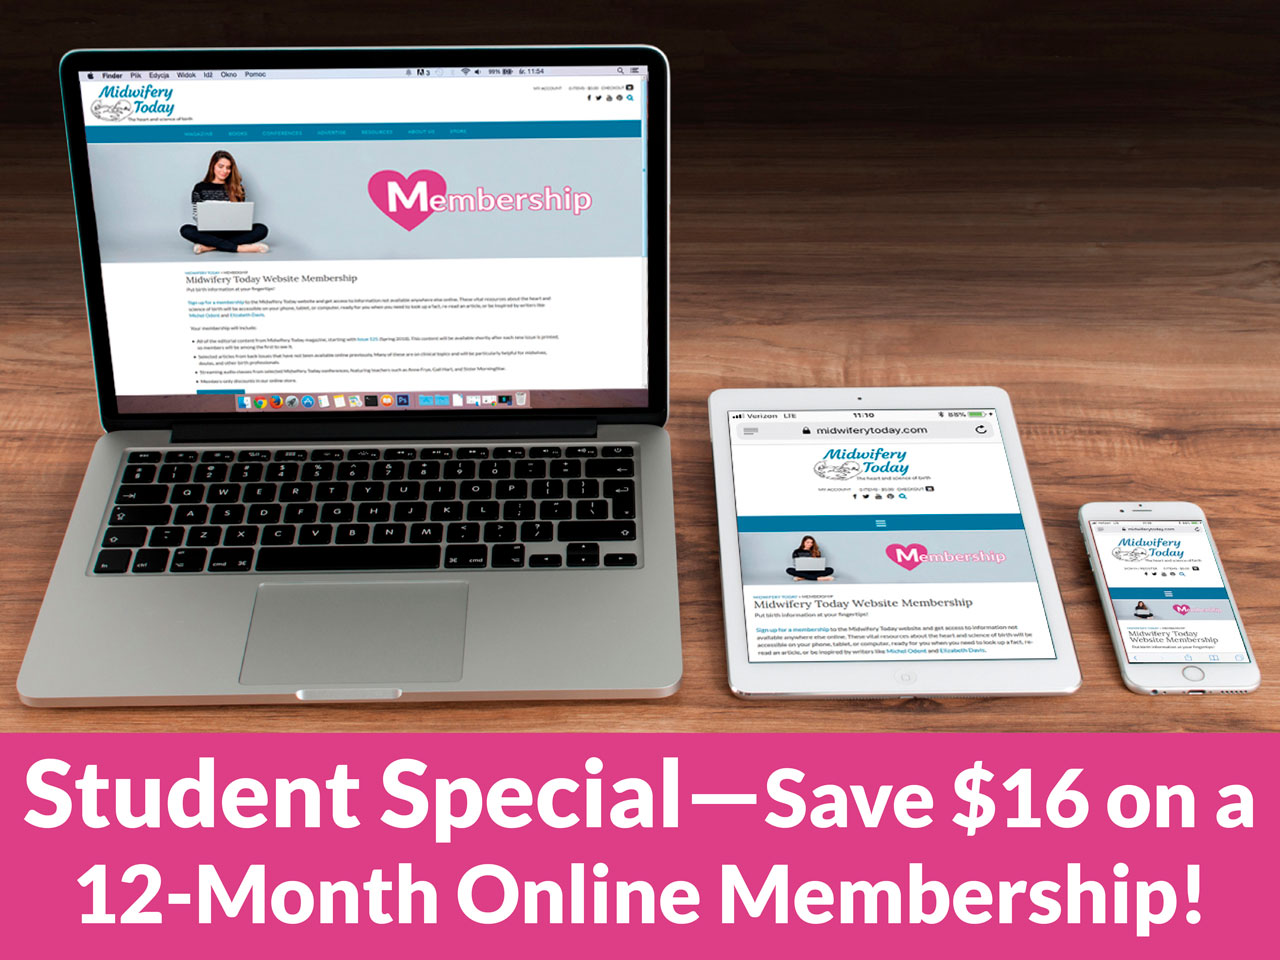 Students save $16 on a 12 month Online Membershop